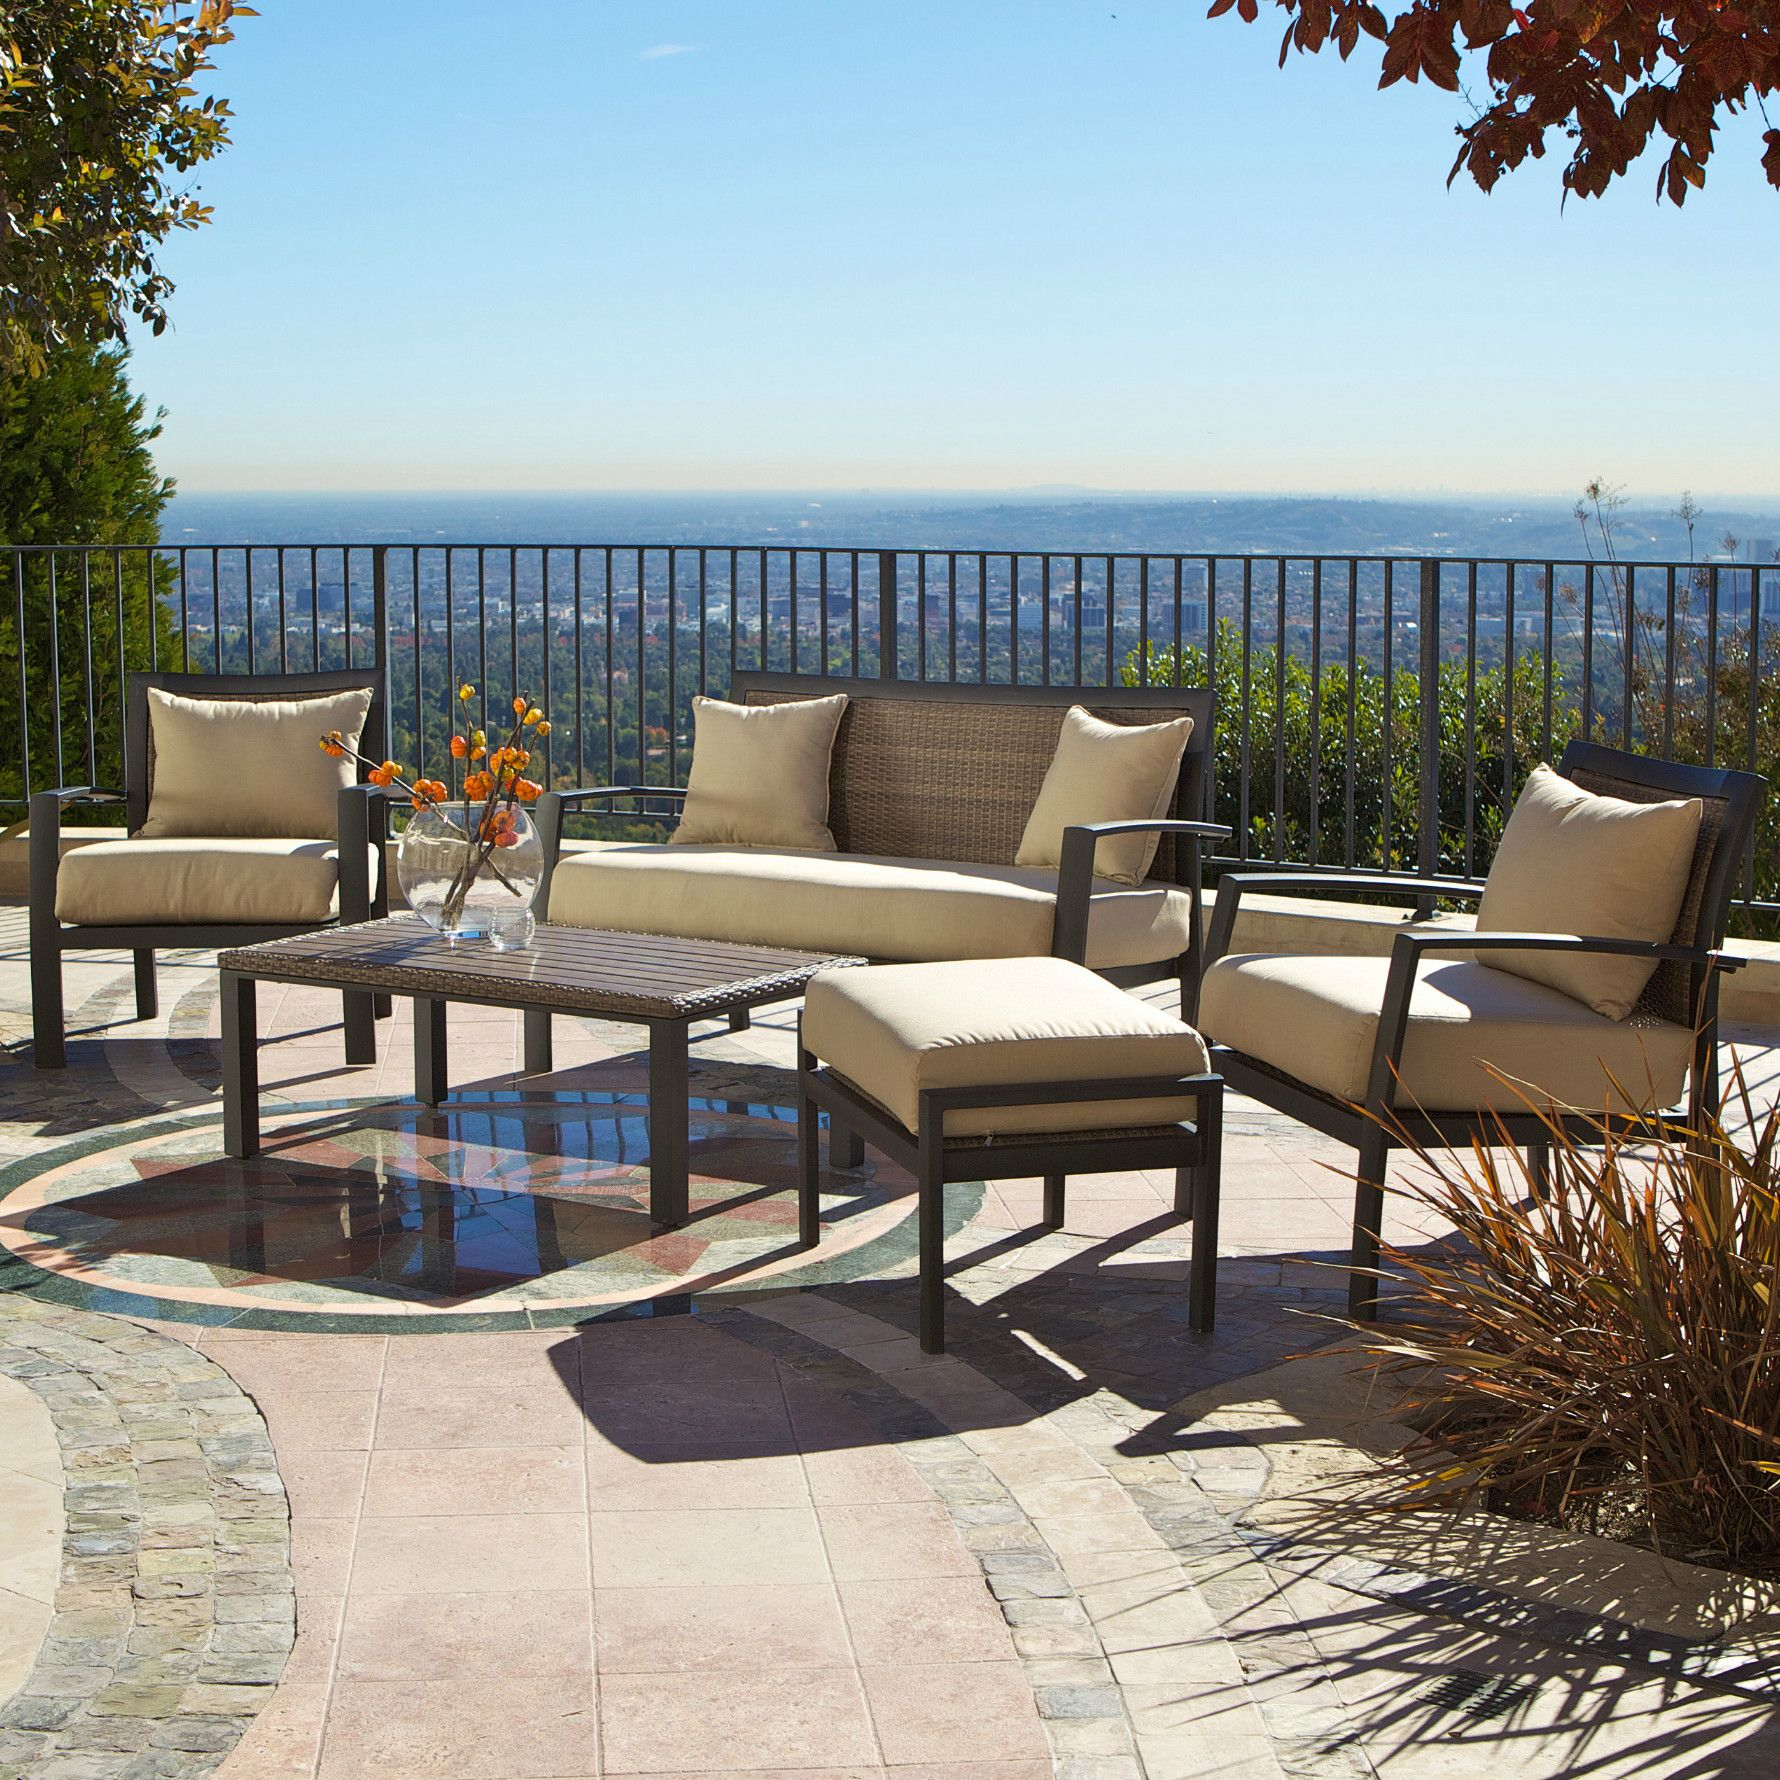 Rst Outdoor Zen 5 Piece Deep Seating Group With Cushions Reviews